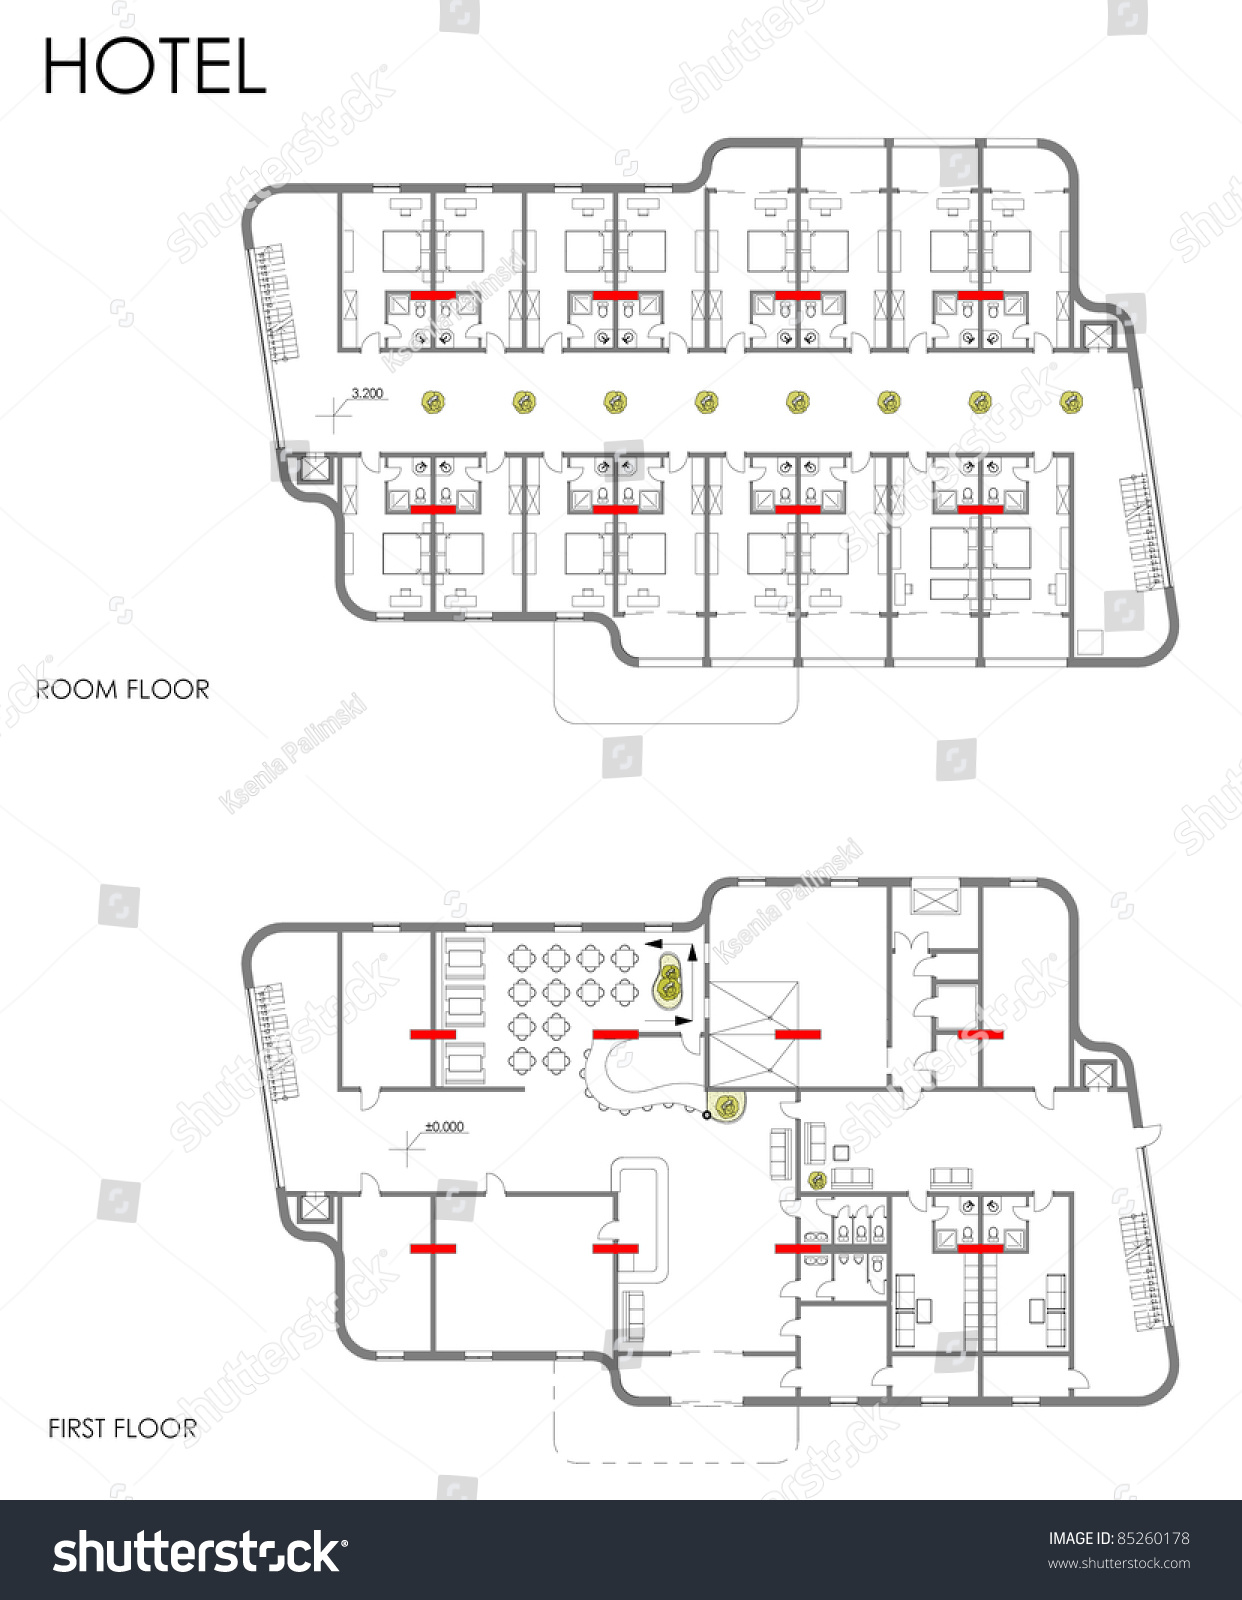 Hotel Drawing Plan Cad Blueprint Stock Illustration Royalty Free Wiring Diagram Symbols On Kitchen